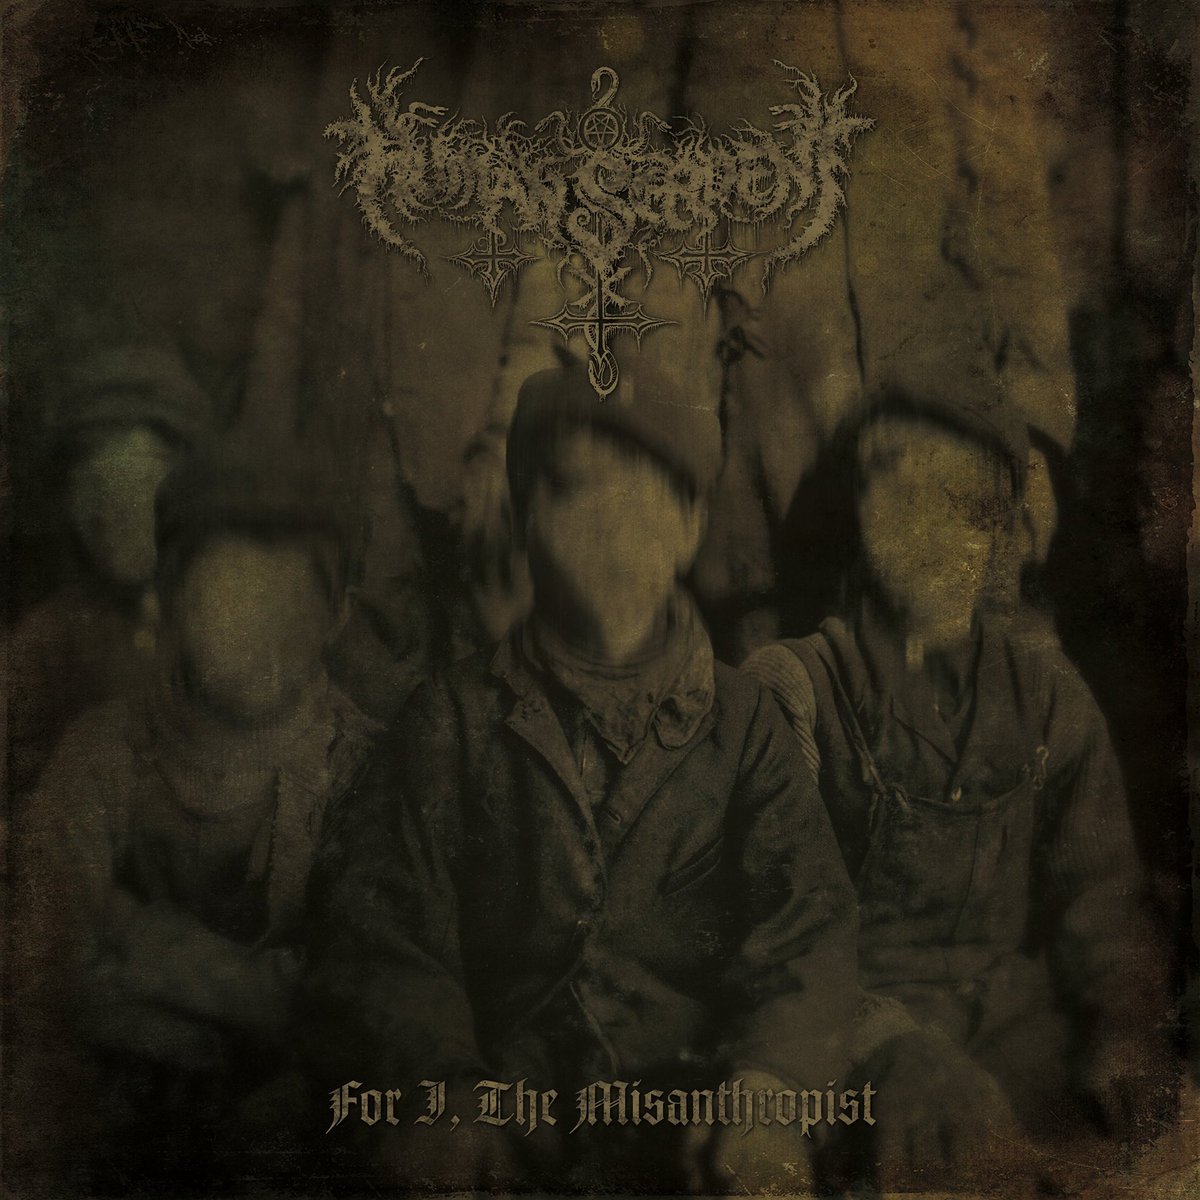 Human Serpent - For I, The Misanthropist